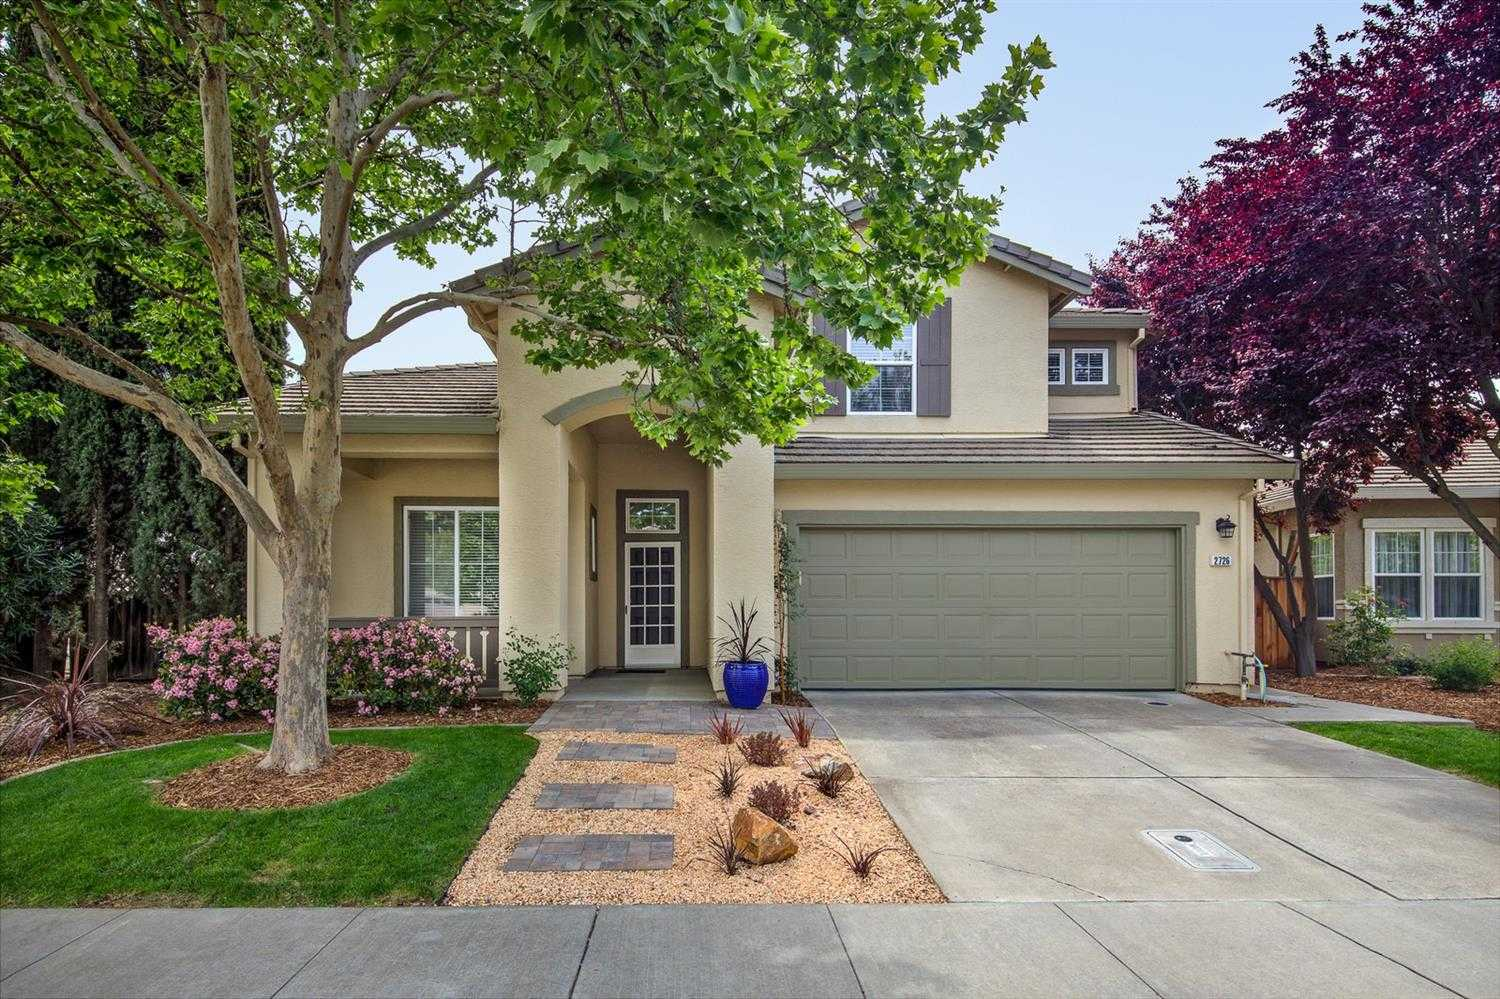 $934,000 - 5Br/3Ba -  for Sale in Wildhorse, Davis